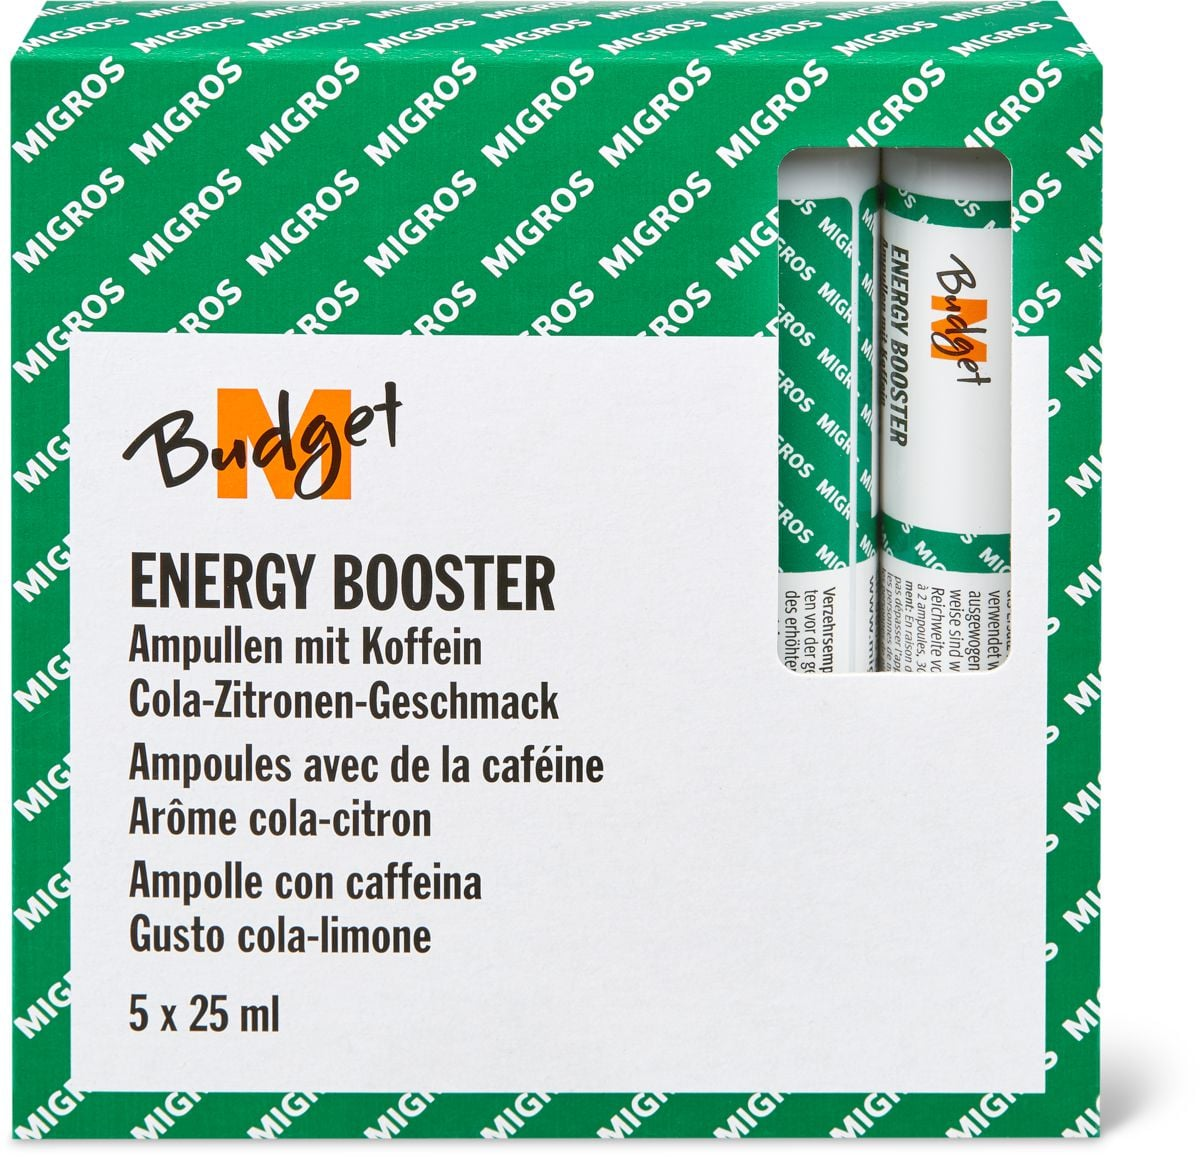 M-Budget Energy Booster